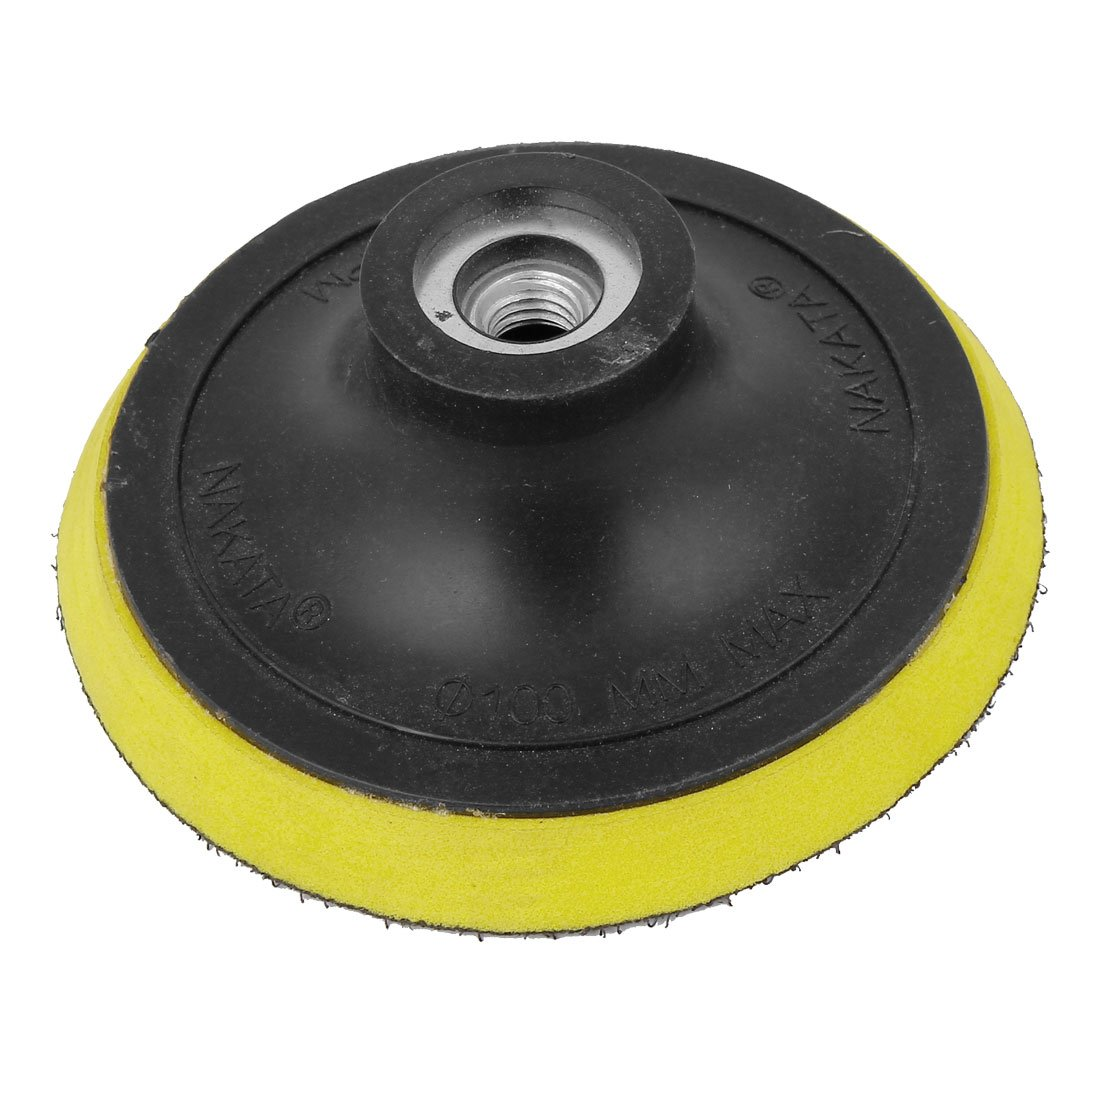 uxcell Angle Grinder Sanding Polishing Hook and Loop Backing Pad 4'' Dia